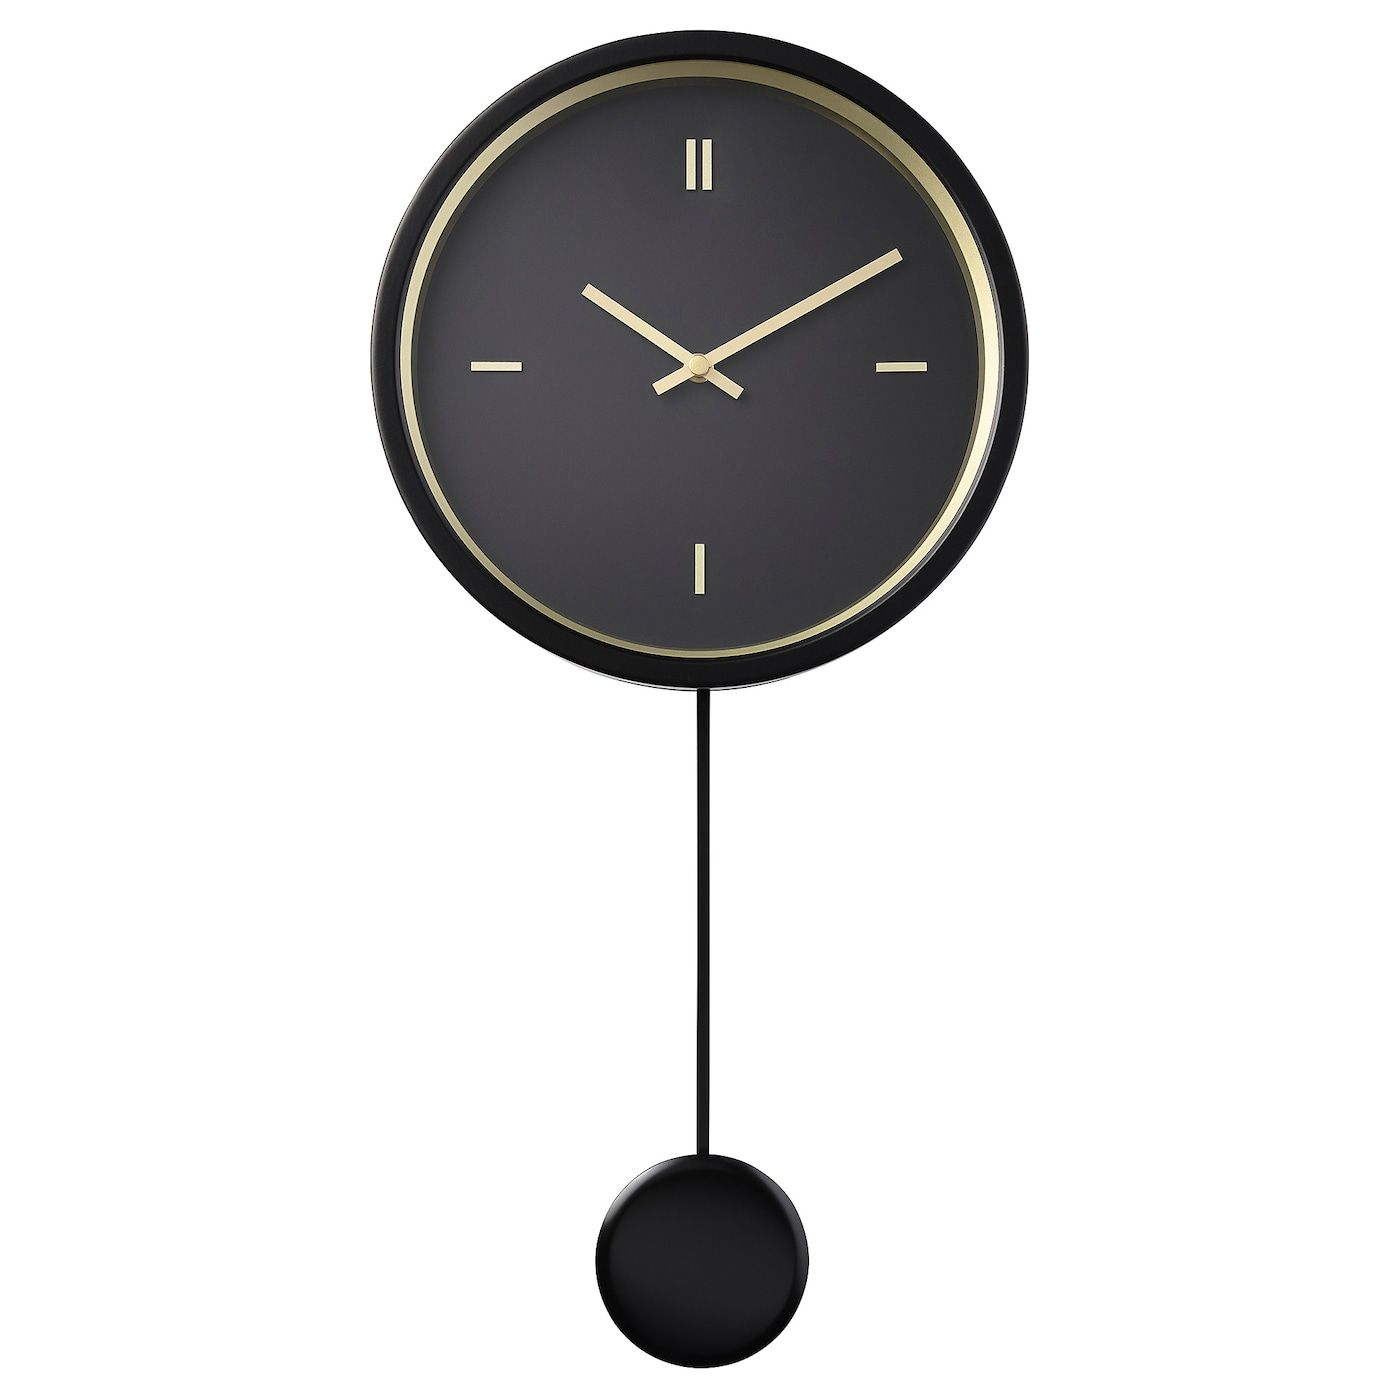 Stursk Wanduhr Schwarz Ikea Osterreich In 2020 Wall Clock Clock Big Wall Clocks